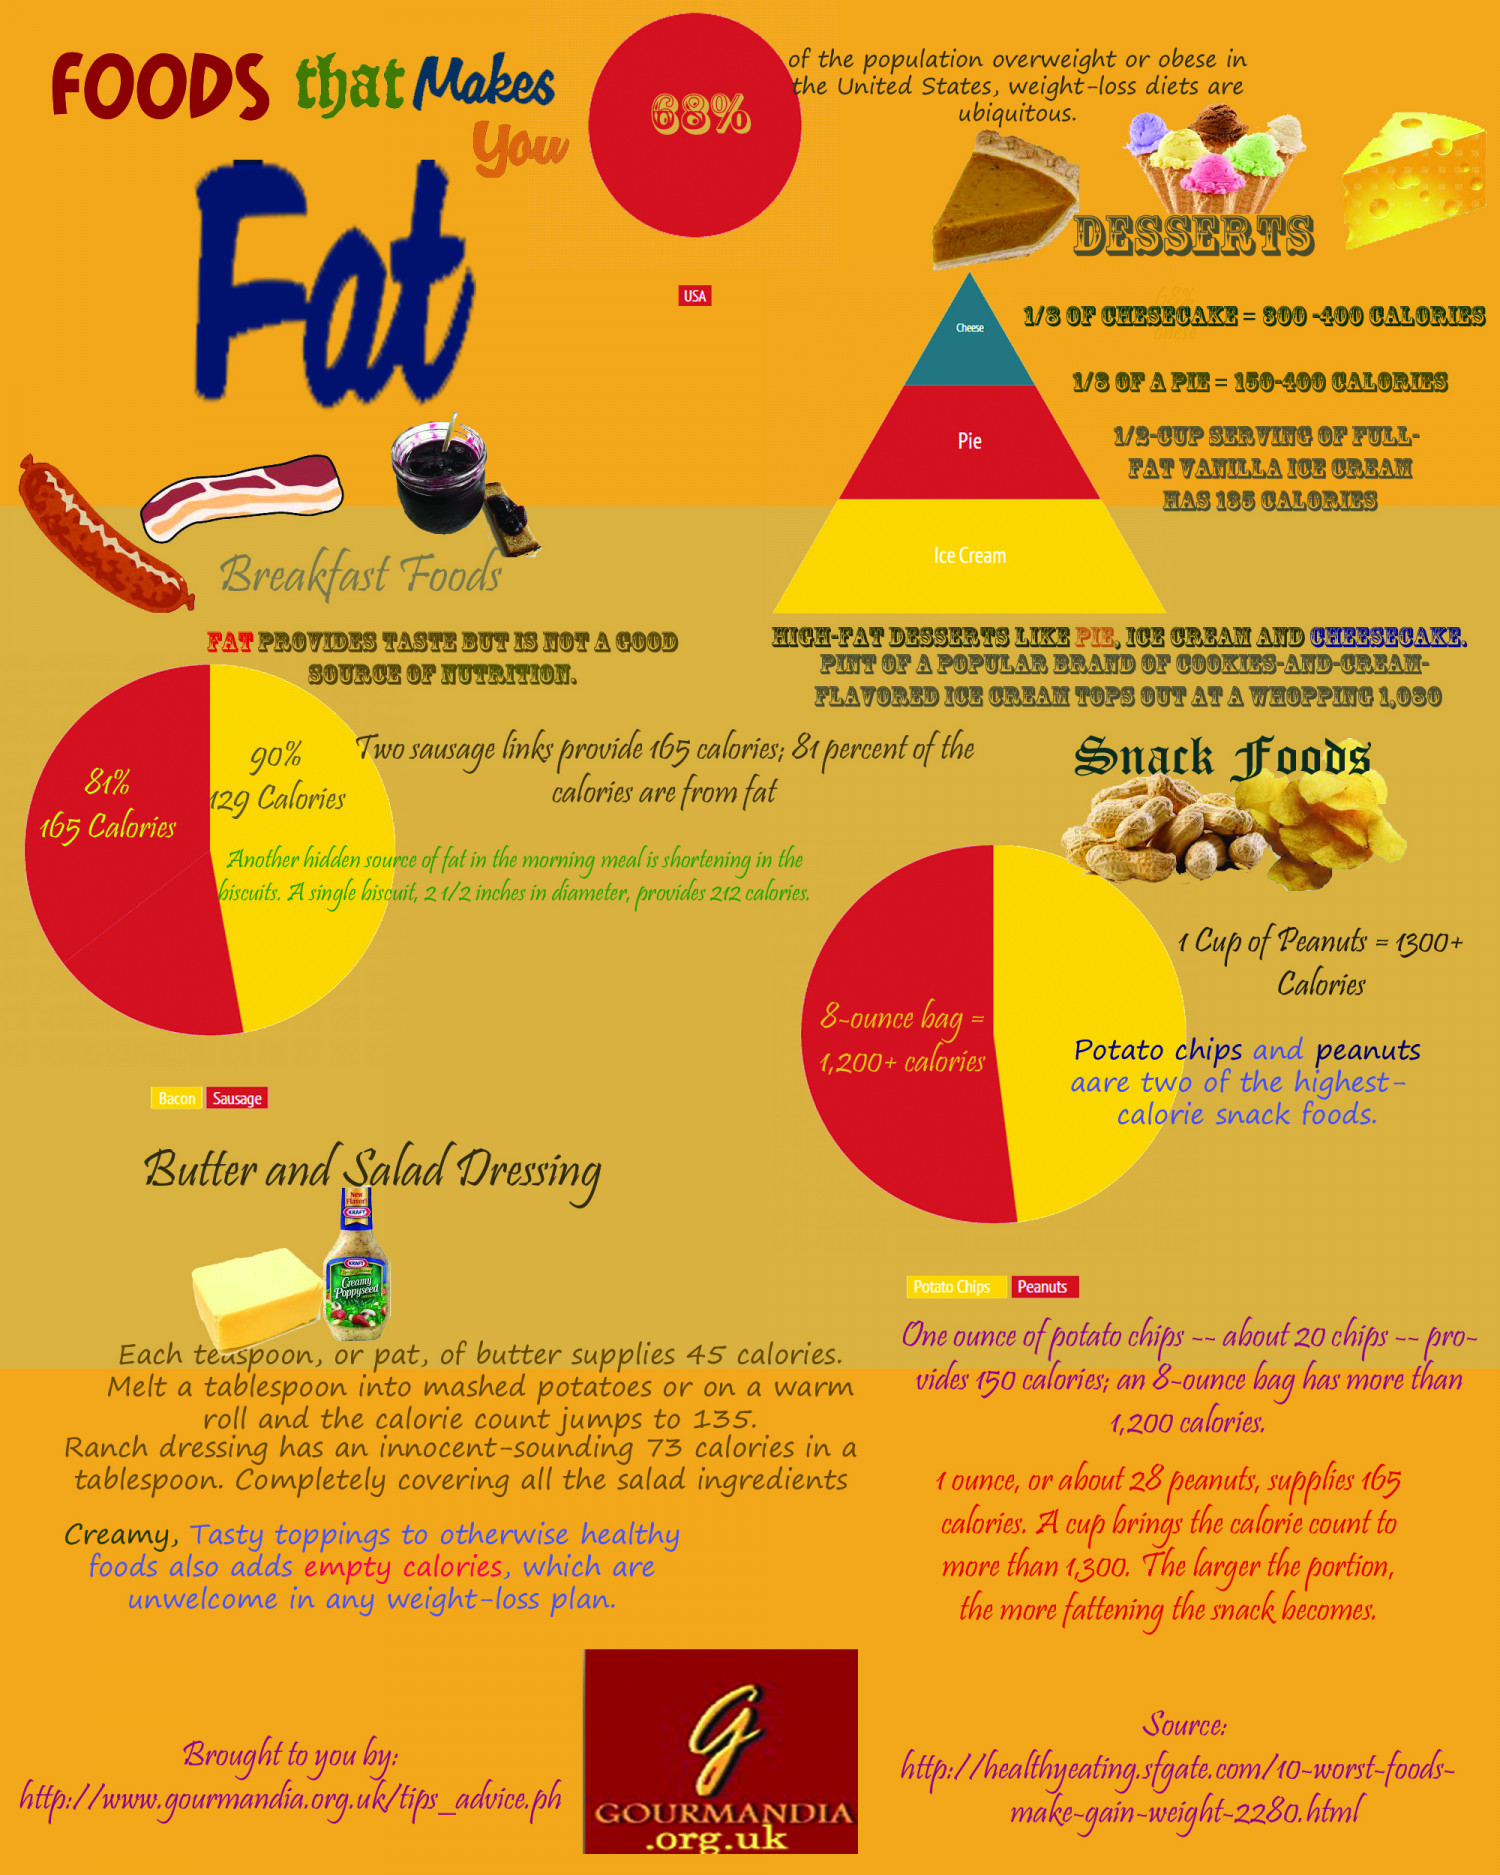 Foods That Make You Fat